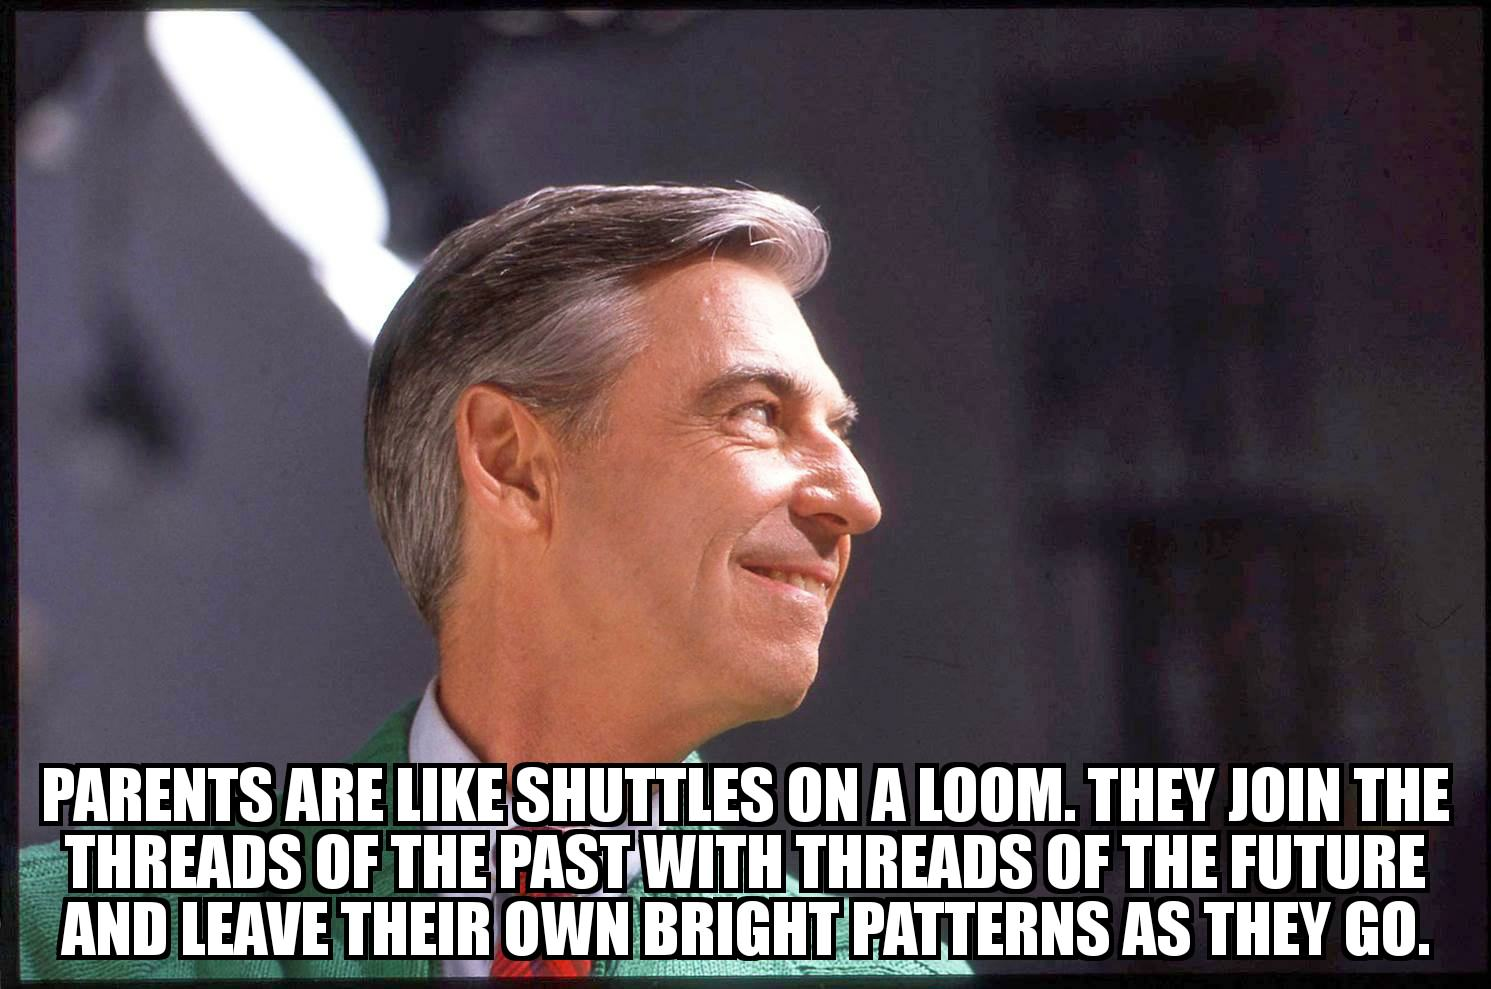 Parents are like shuttles on a loom. They join the threads of the past with threads of the future and leave their own bright patterns as they go ~ Mr Rogers [1491 x 989]